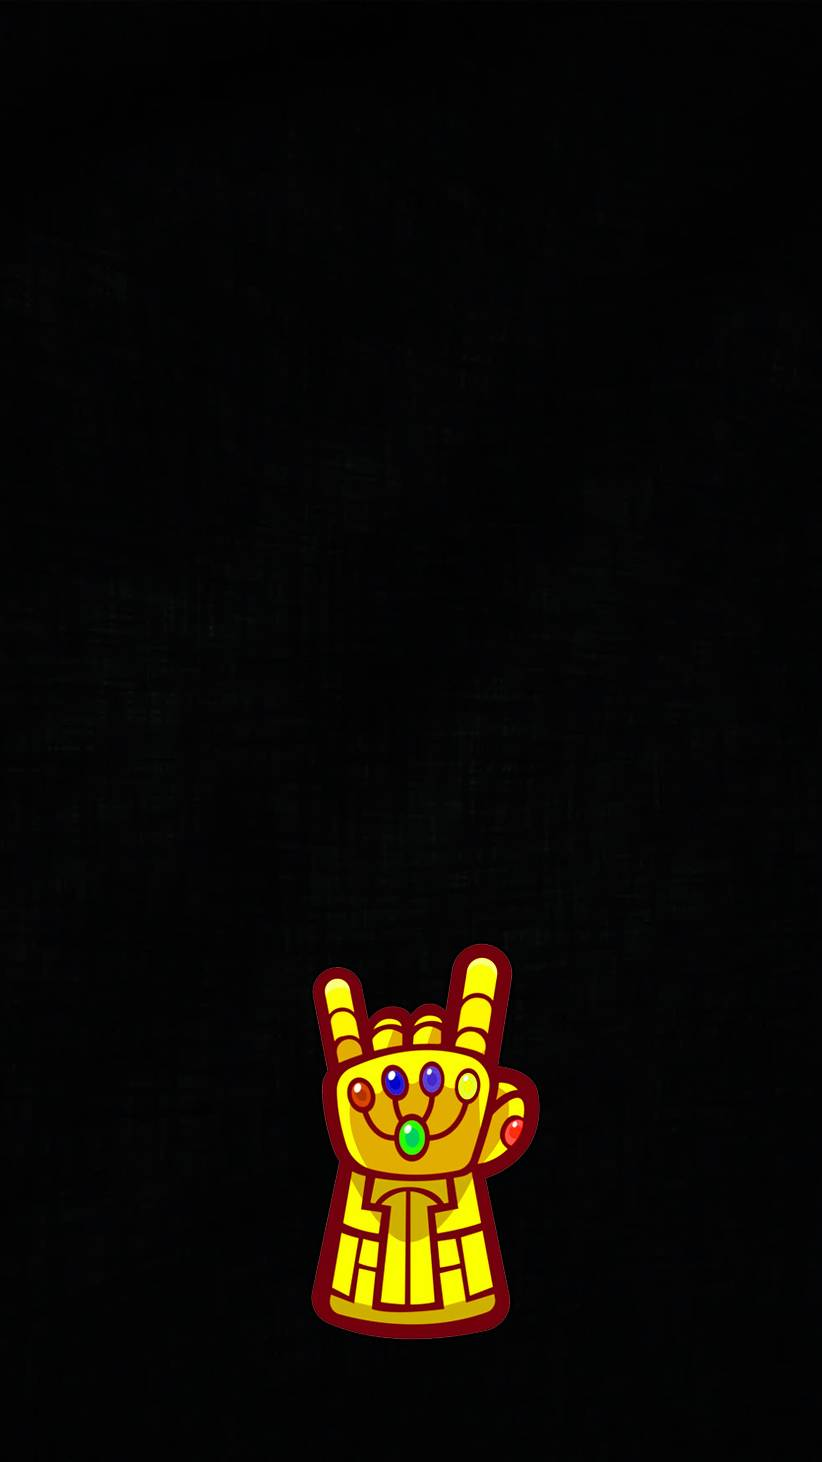 The Infinity Gauntlet Minimal iPhone Wallpaper